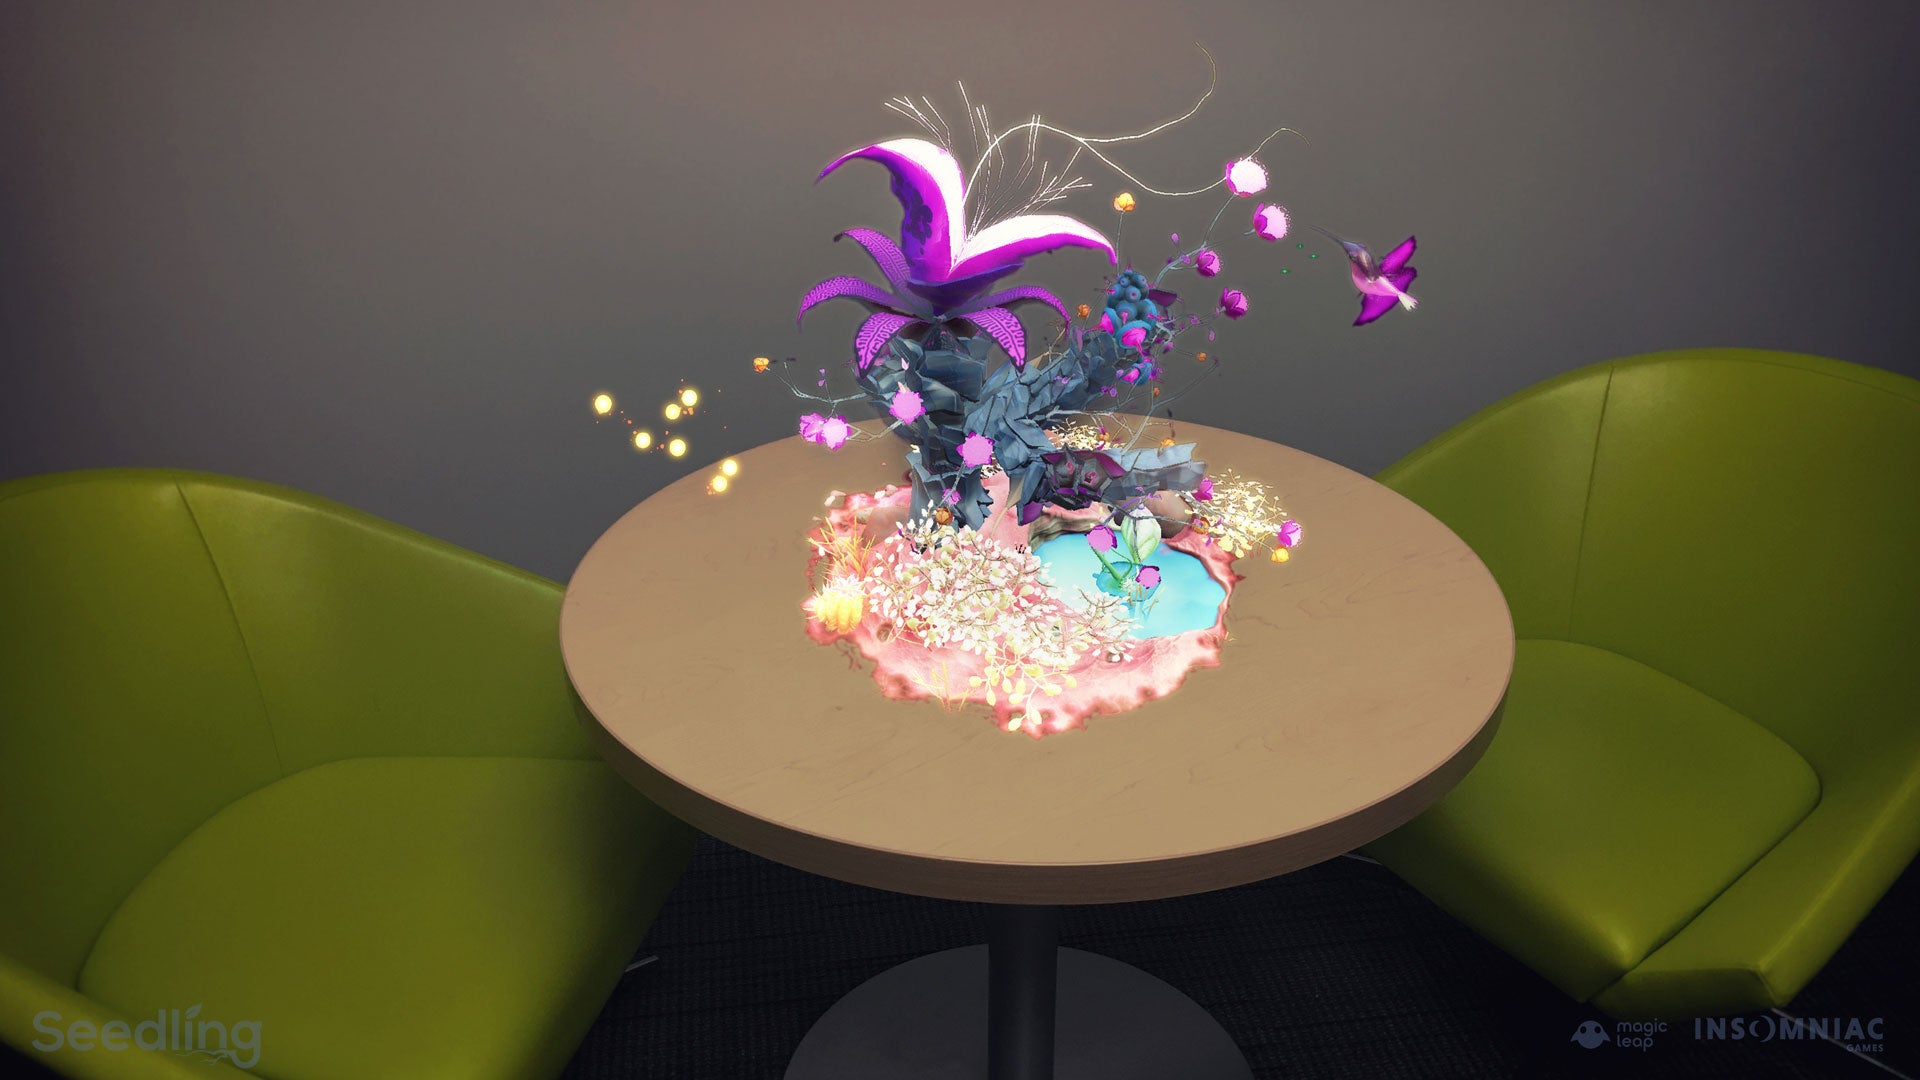 Seedling On Magic Leap Is The Most Relaxing Space Gardening Game You'll Never Play